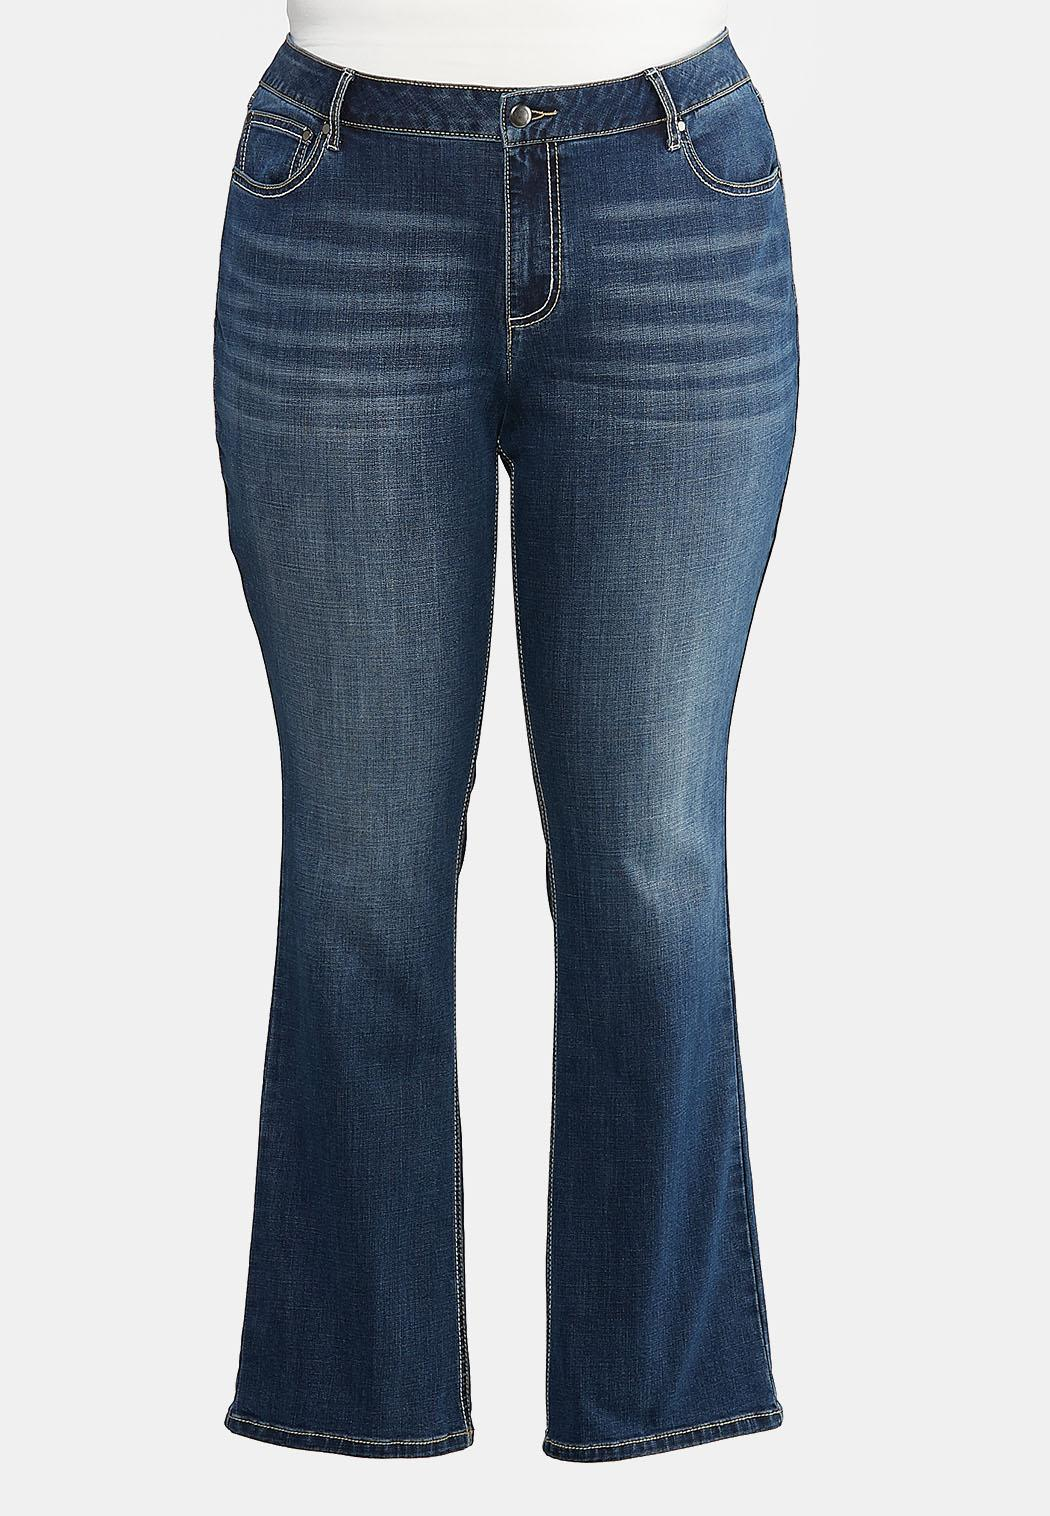 Plus Extended Curvy Studded Pocket Bootcut Jeans (Item #43926723)